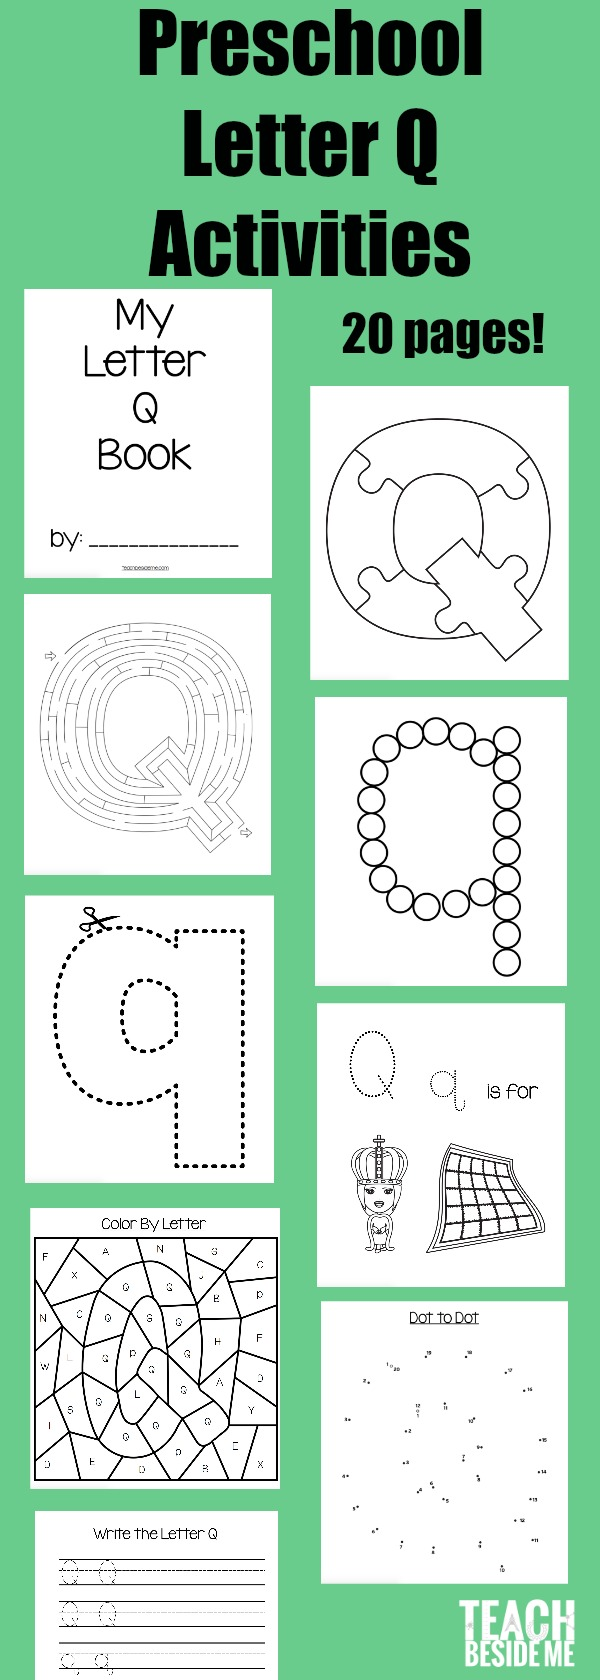 Letter of the Week: Preschool Letter Q Activities - Teach Beside Me